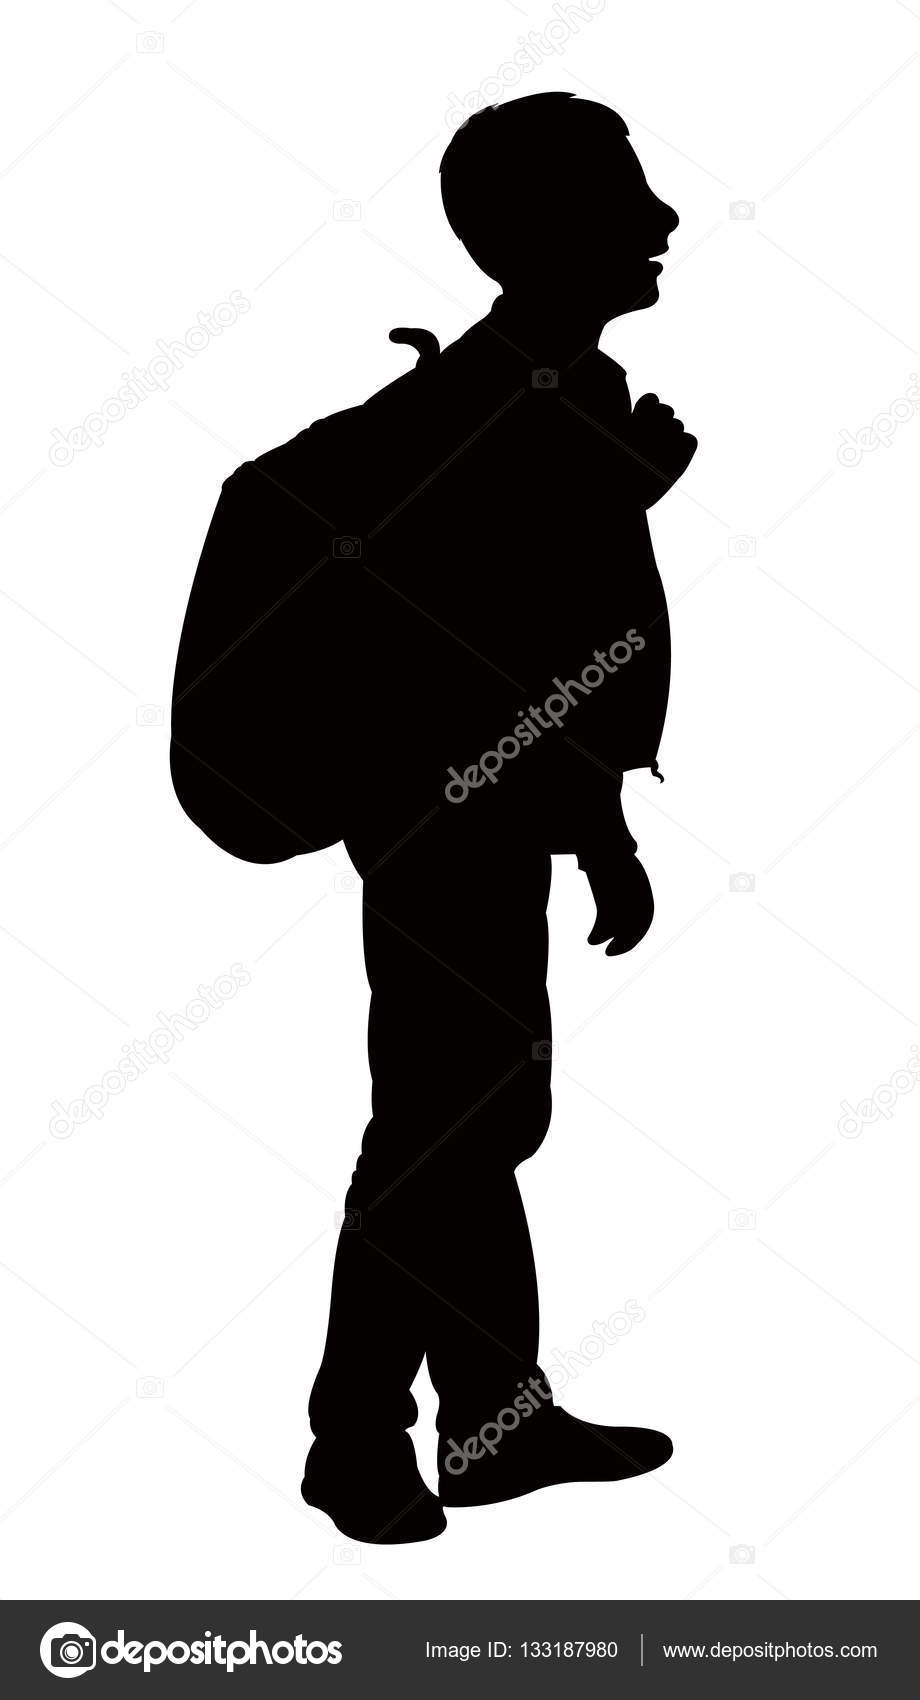 920x1700 back to school kid silhouette